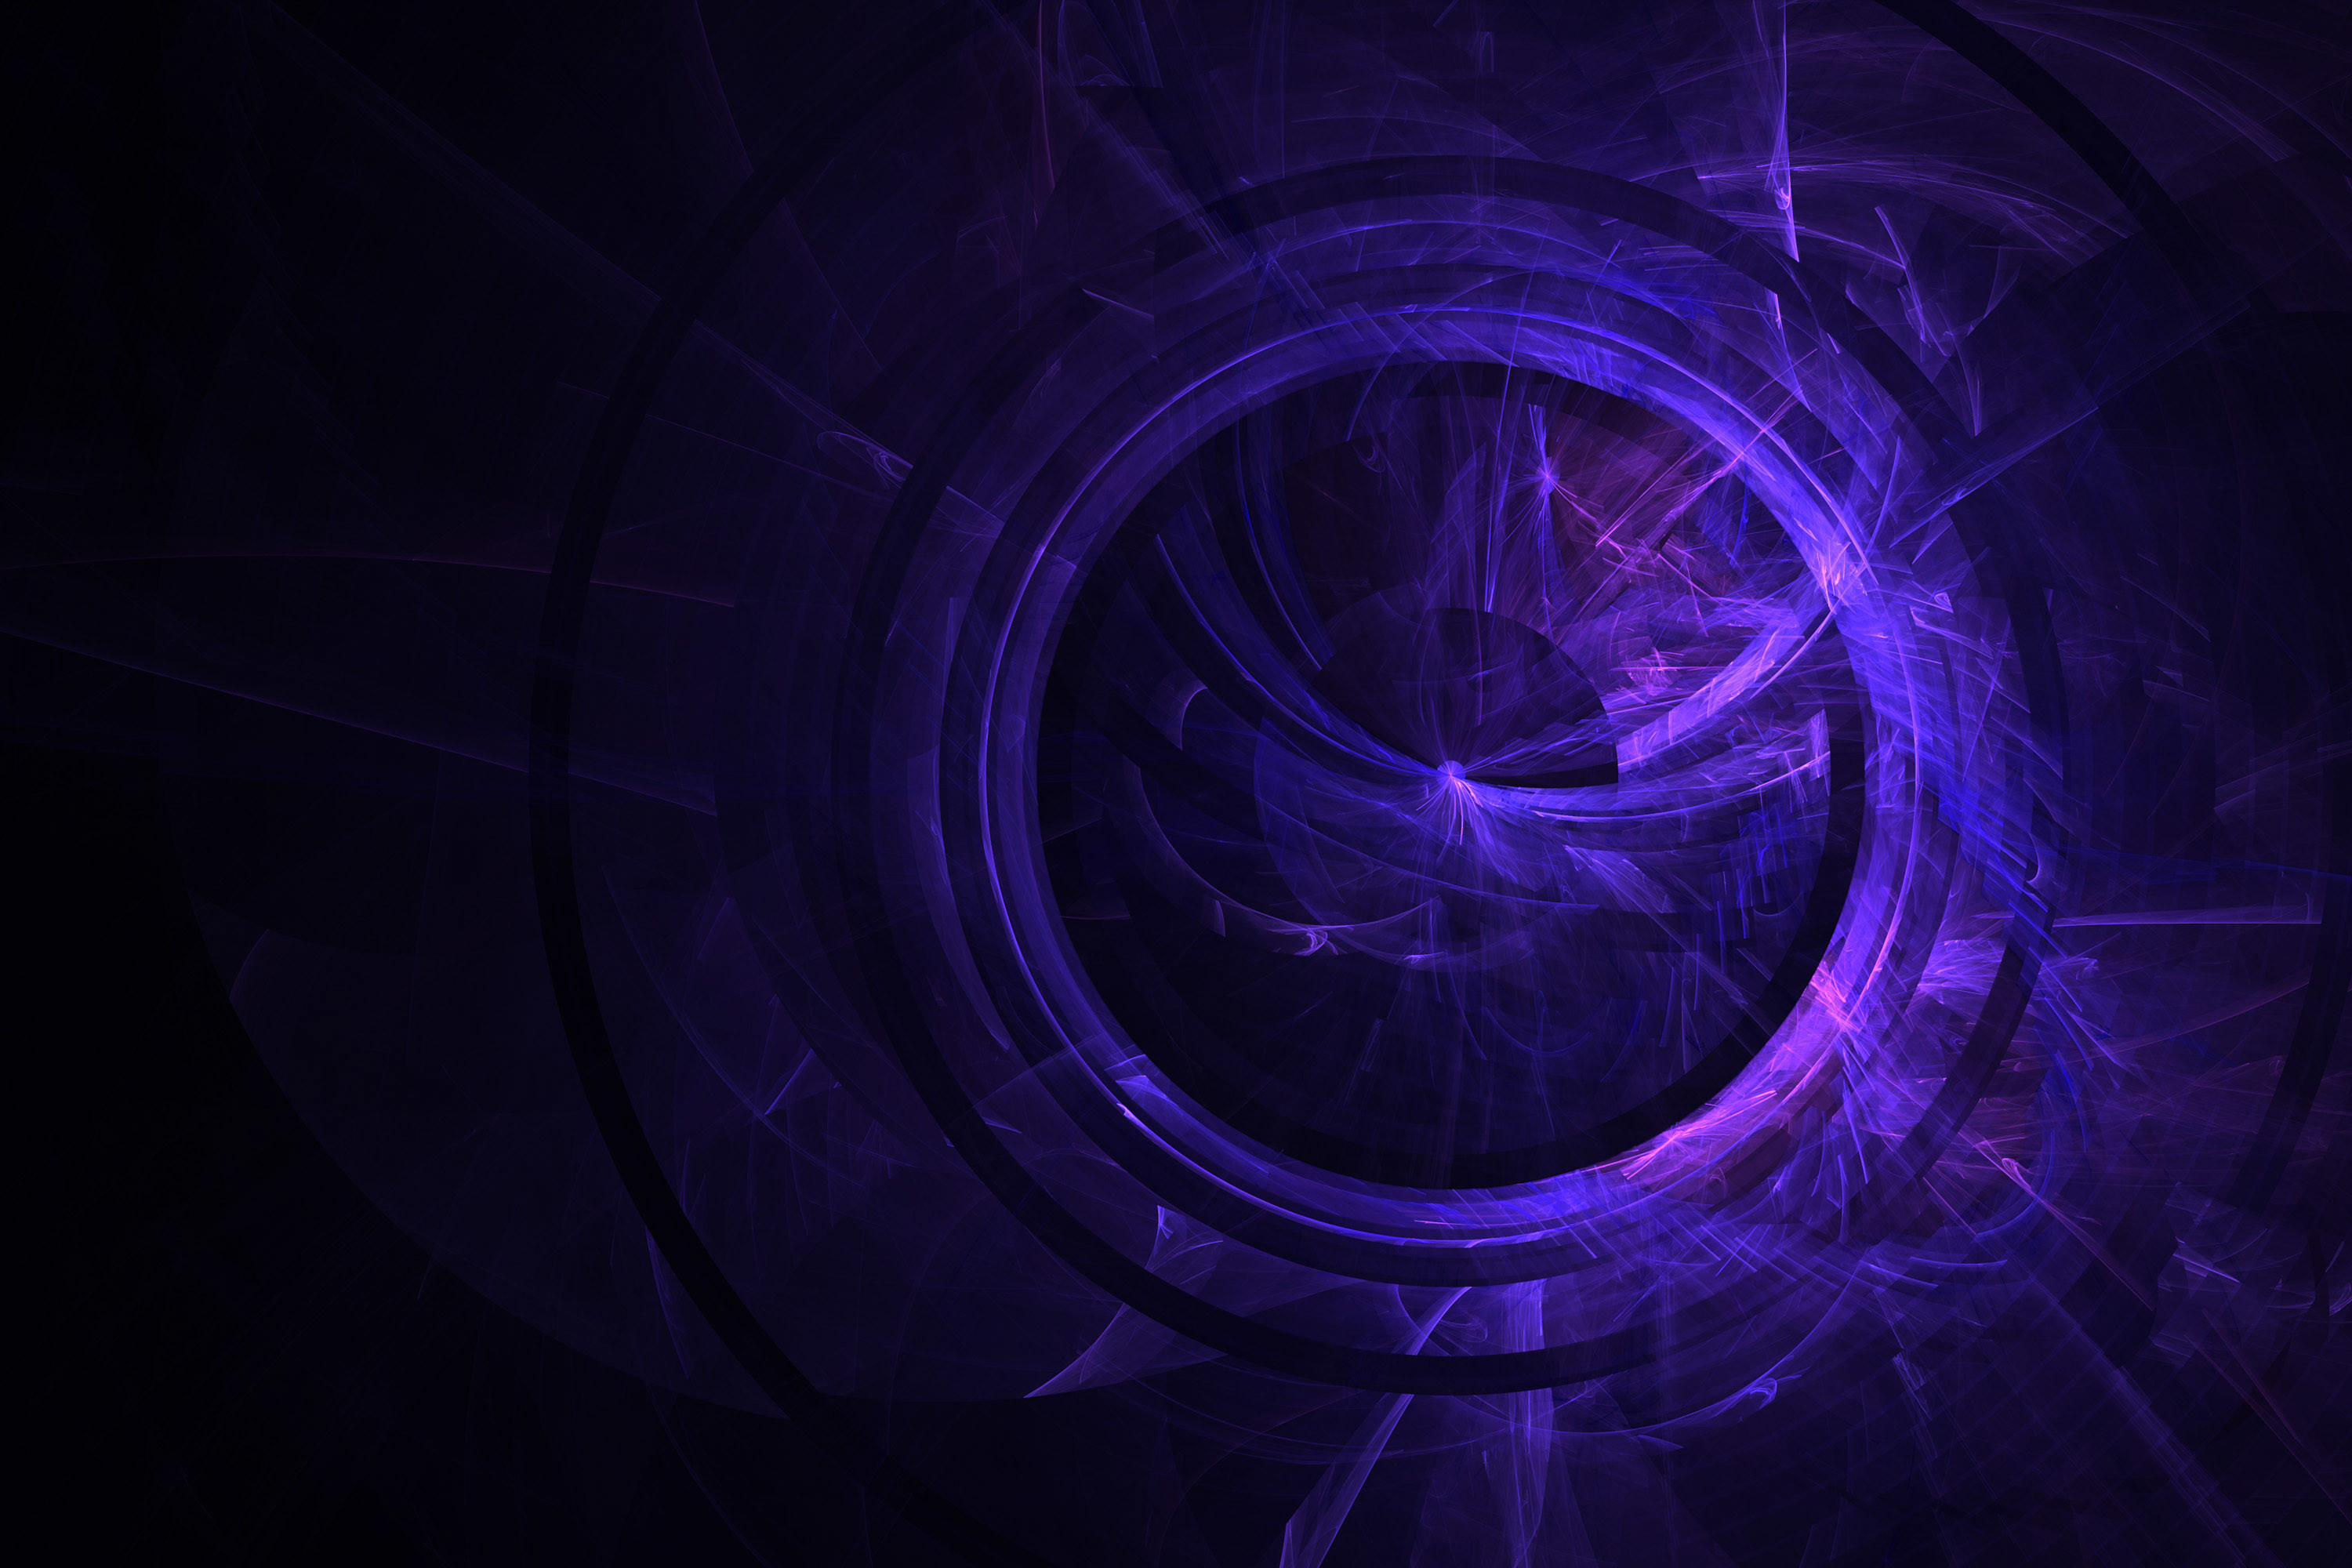 … fractal texture purple circle sphere rings abstract light wallpaper …